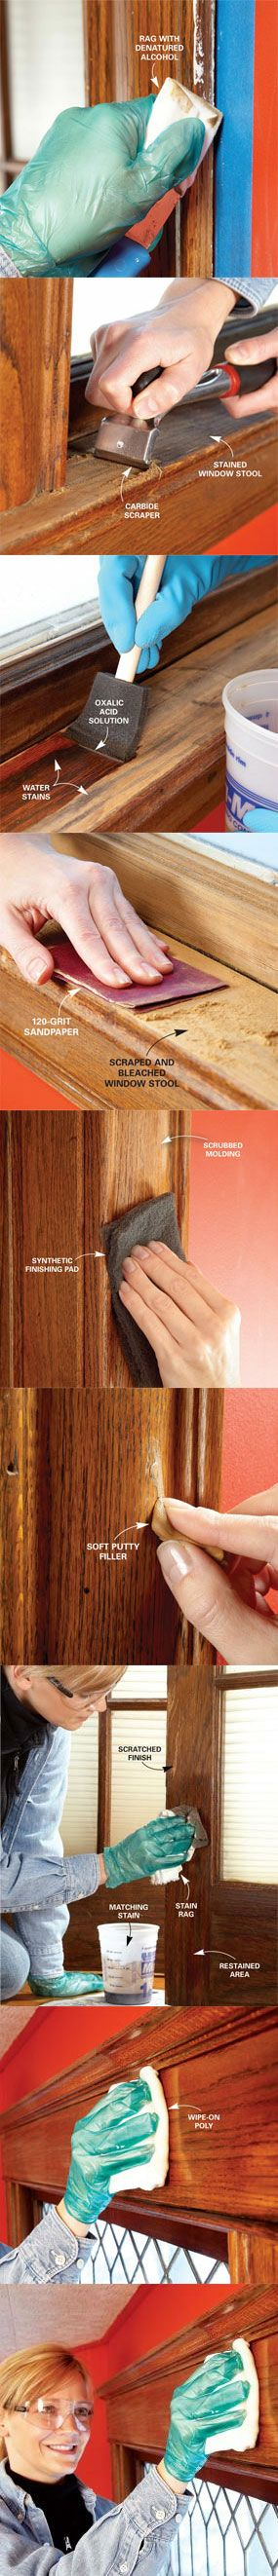 Learn how to revive trim at http://www.familyhandyman.com/DIY-Projects/Trim/DIY-Tips-On-Trim/trim-repair-how-to-fix-and-revive-trim/View-All